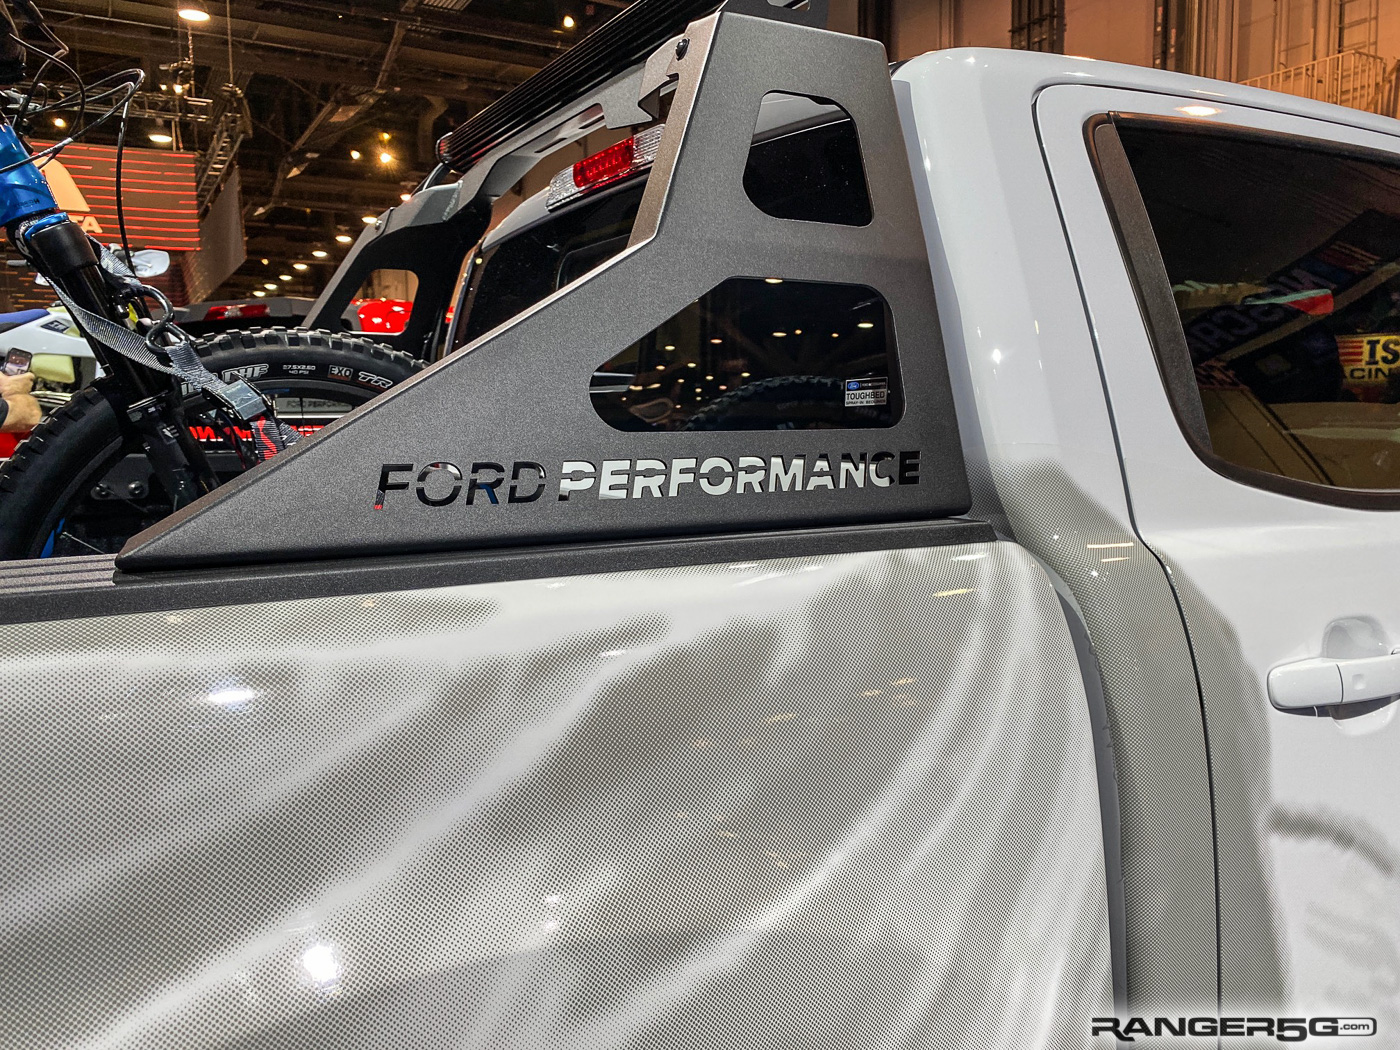 Ford-Performance-Adventure-Ready-Ranger-Lariat-Black-Appearance-Package-SEMA-2019-10.jpg